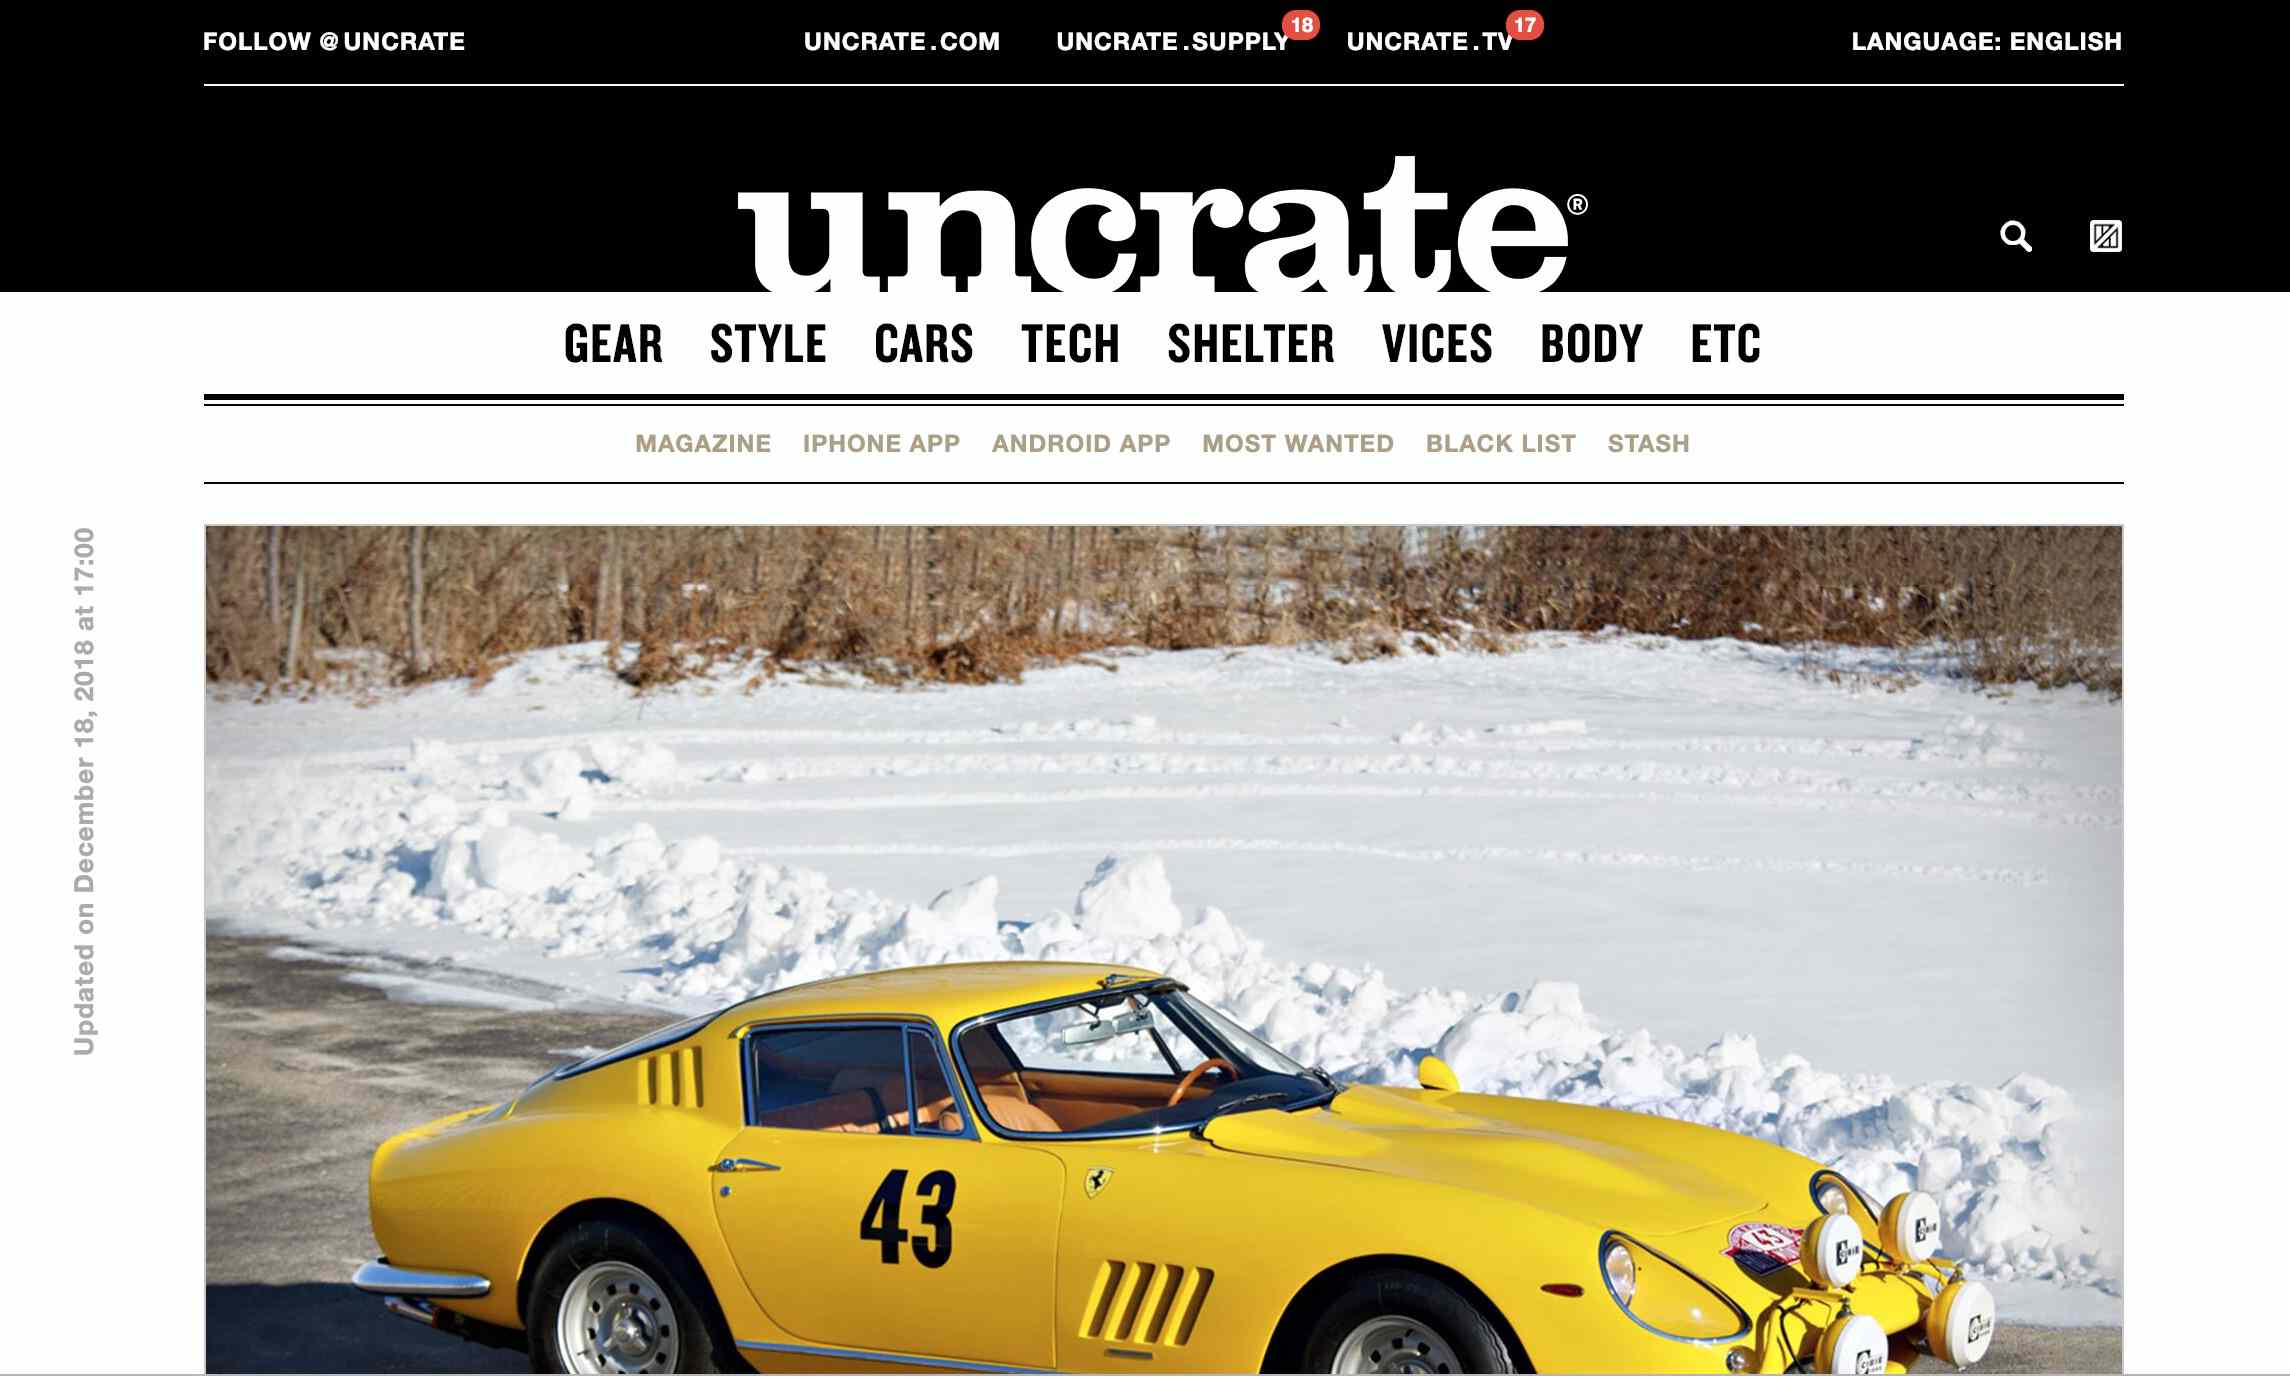 Uncrate homepage